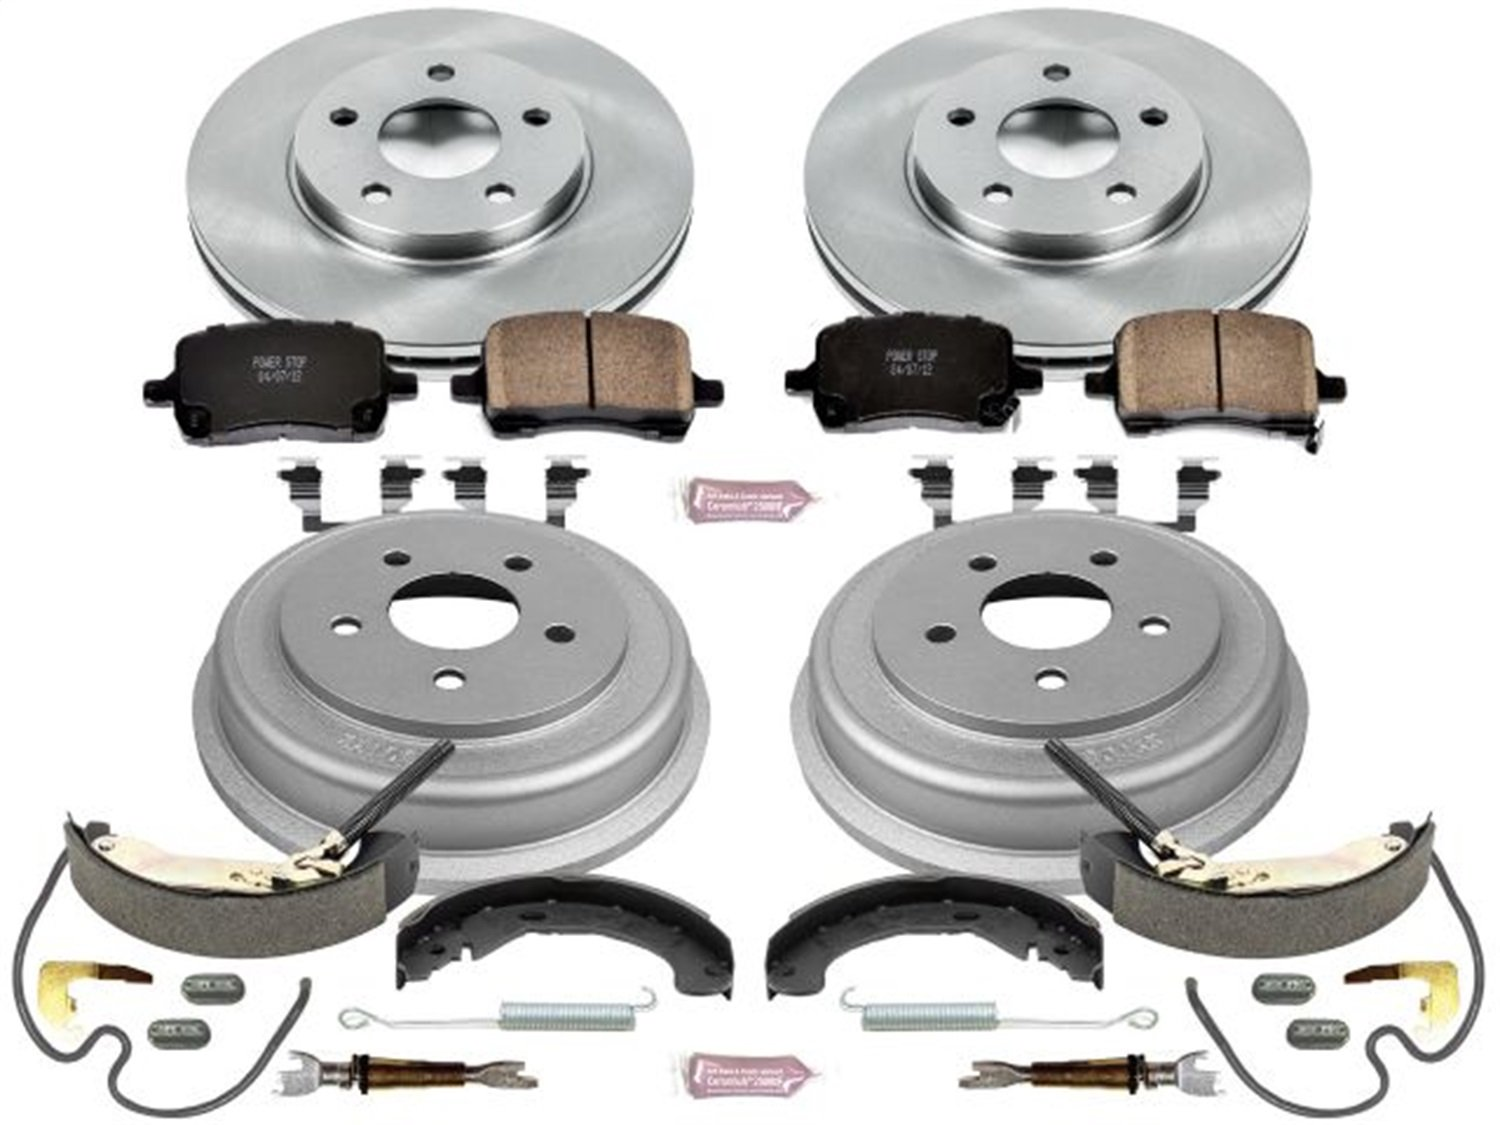 Power Stop Front /& Rear KOE15239DK Autospecialty Daily Driver Pad Drum and Shoe Kits Rotor